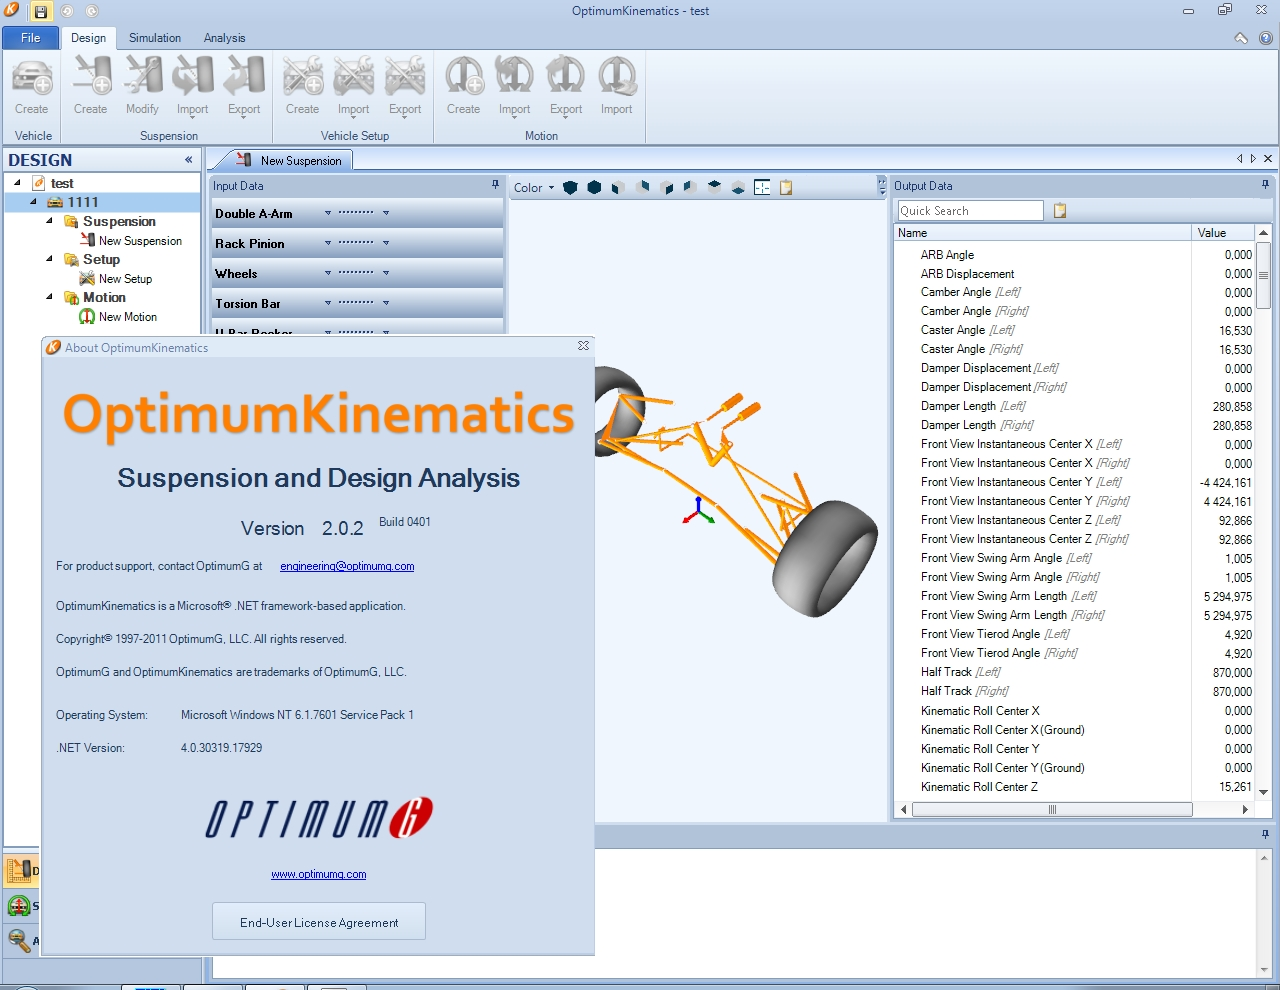 OptimumKinematics 2.0.2